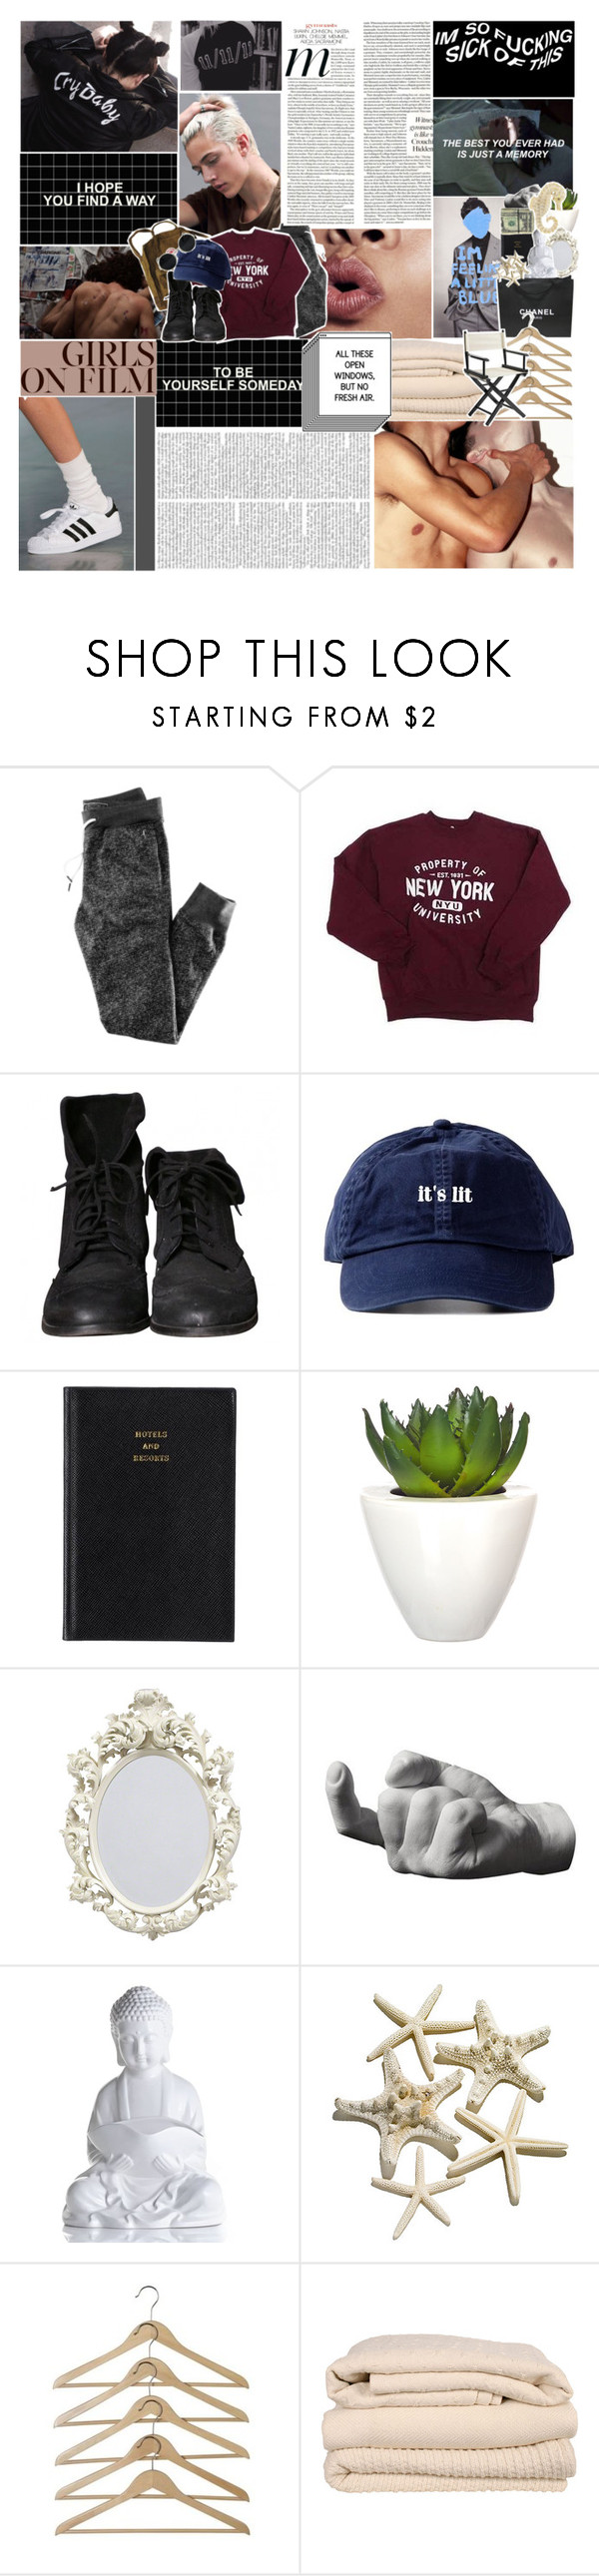 """""""i'll be singing in the shower—"""" by graham-almighty ❤ liked on Polyvore featuring H&M, Zara, Prada, Pomax, Chanel, Areaware, Brahms Mount, Pier 1 Imports, women's clothing and women's fashion"""